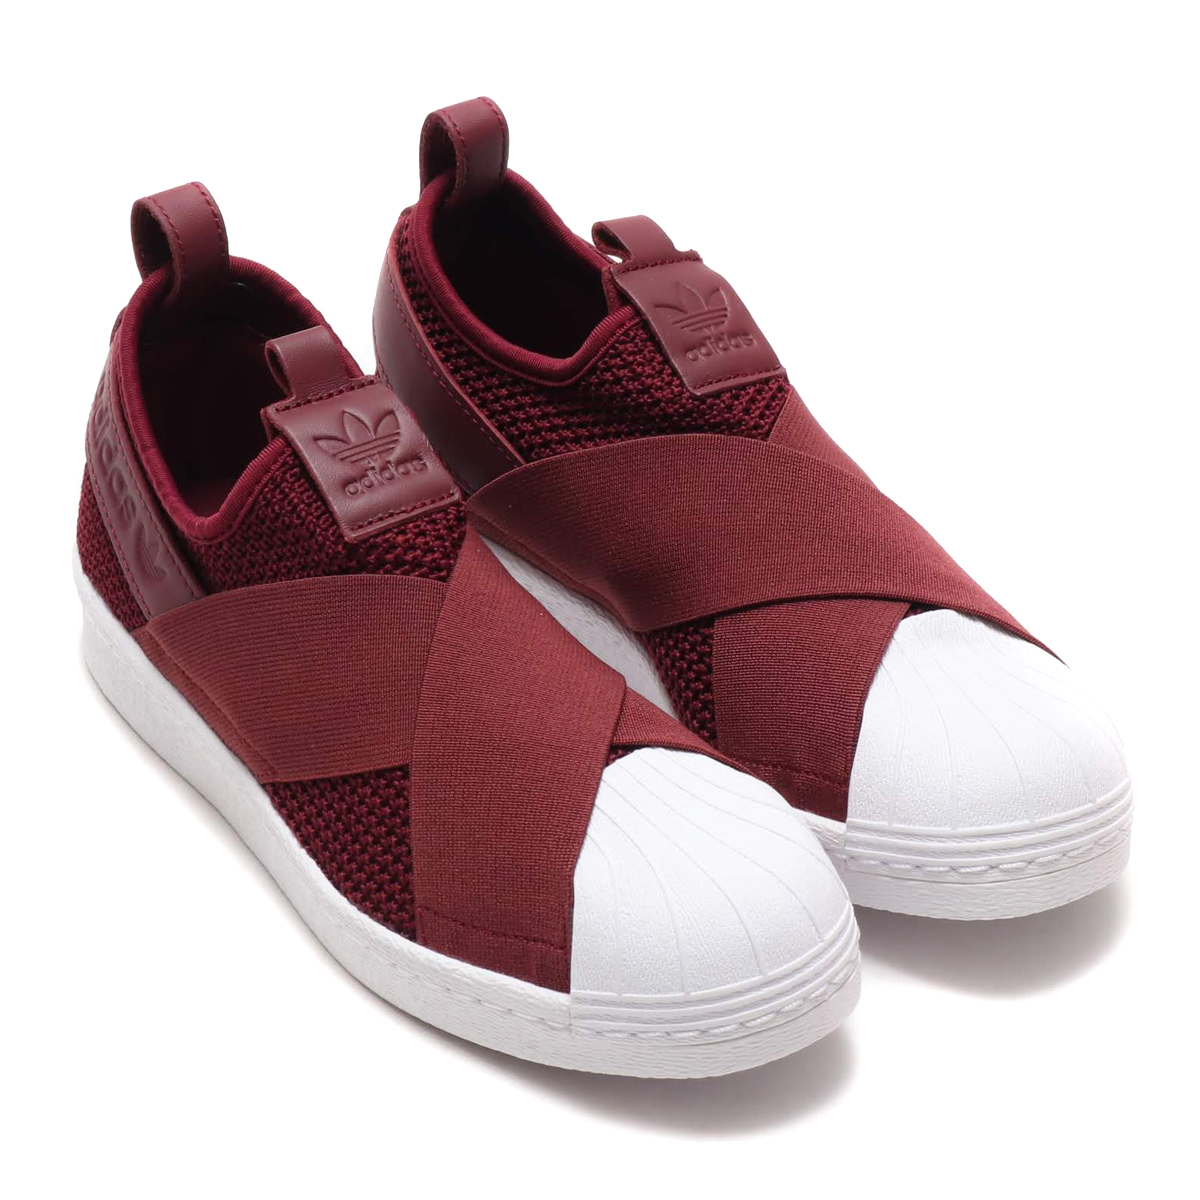 adidas Originals SS Slip On W (Adidas originals superstar slip-ons W) RED  NIGHT RED NIGHT RUNNING WHITE 18FW-I a589c3d6f